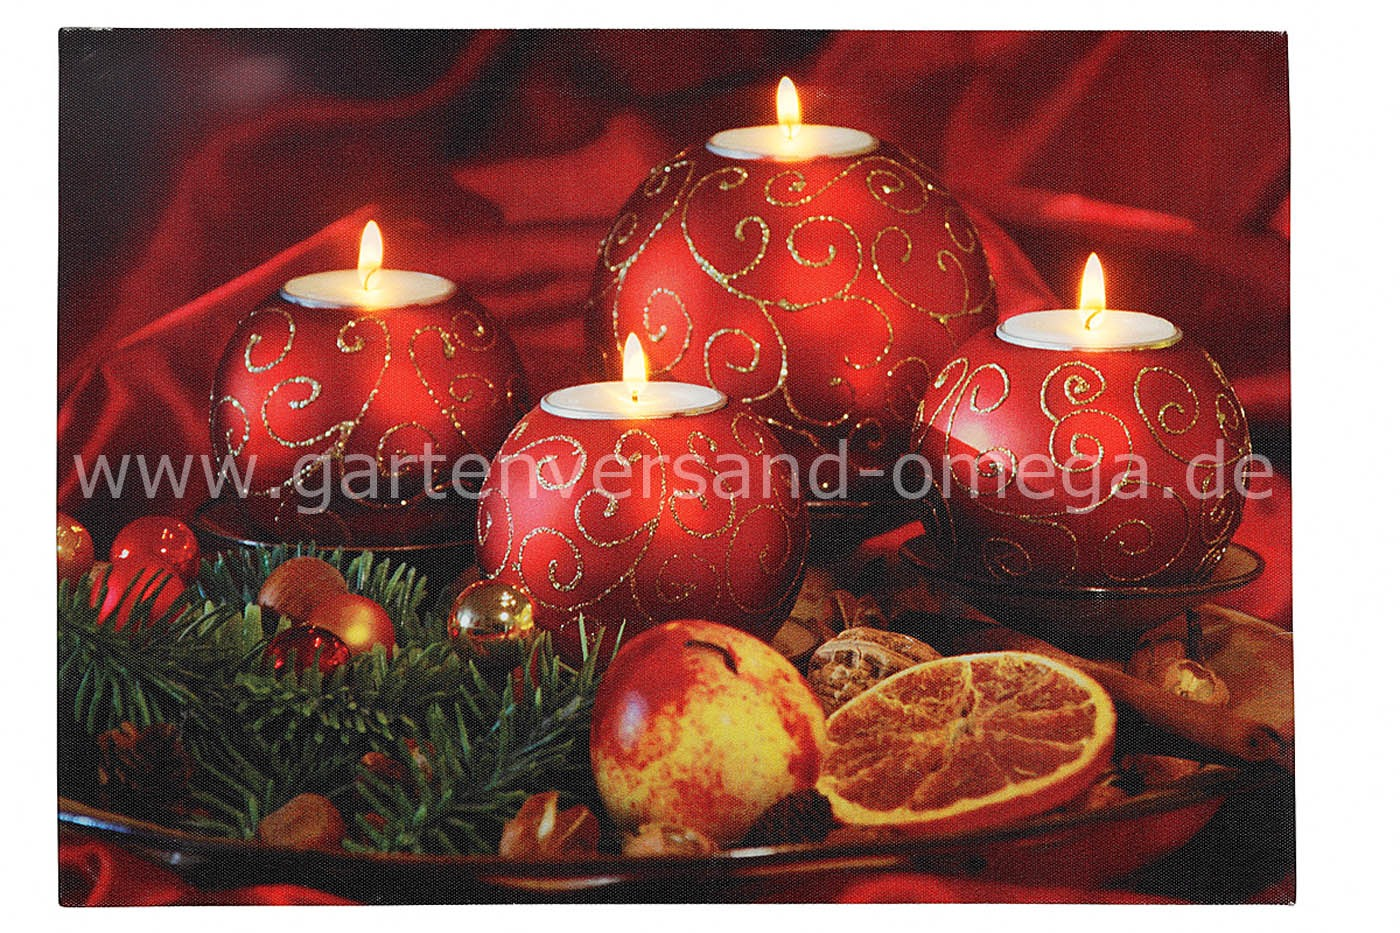 led bilder weihnachten led bilder weihnachten my blog 2er set led bilder weihnachten smash. Black Bedroom Furniture Sets. Home Design Ideas